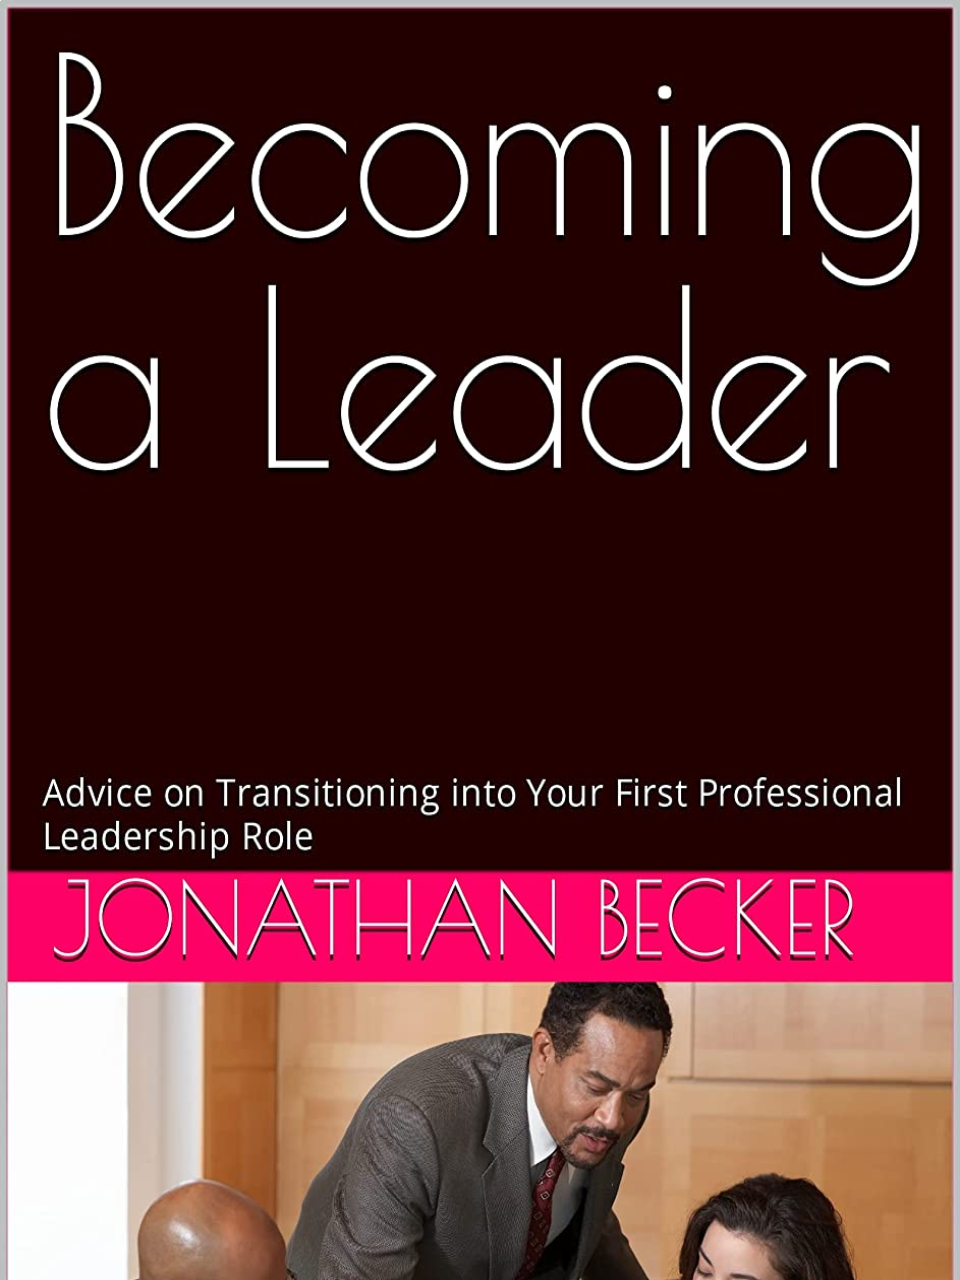 Becoming a Leader: Advice on Transitioning into Your First Professional Leadership Role's Book Image